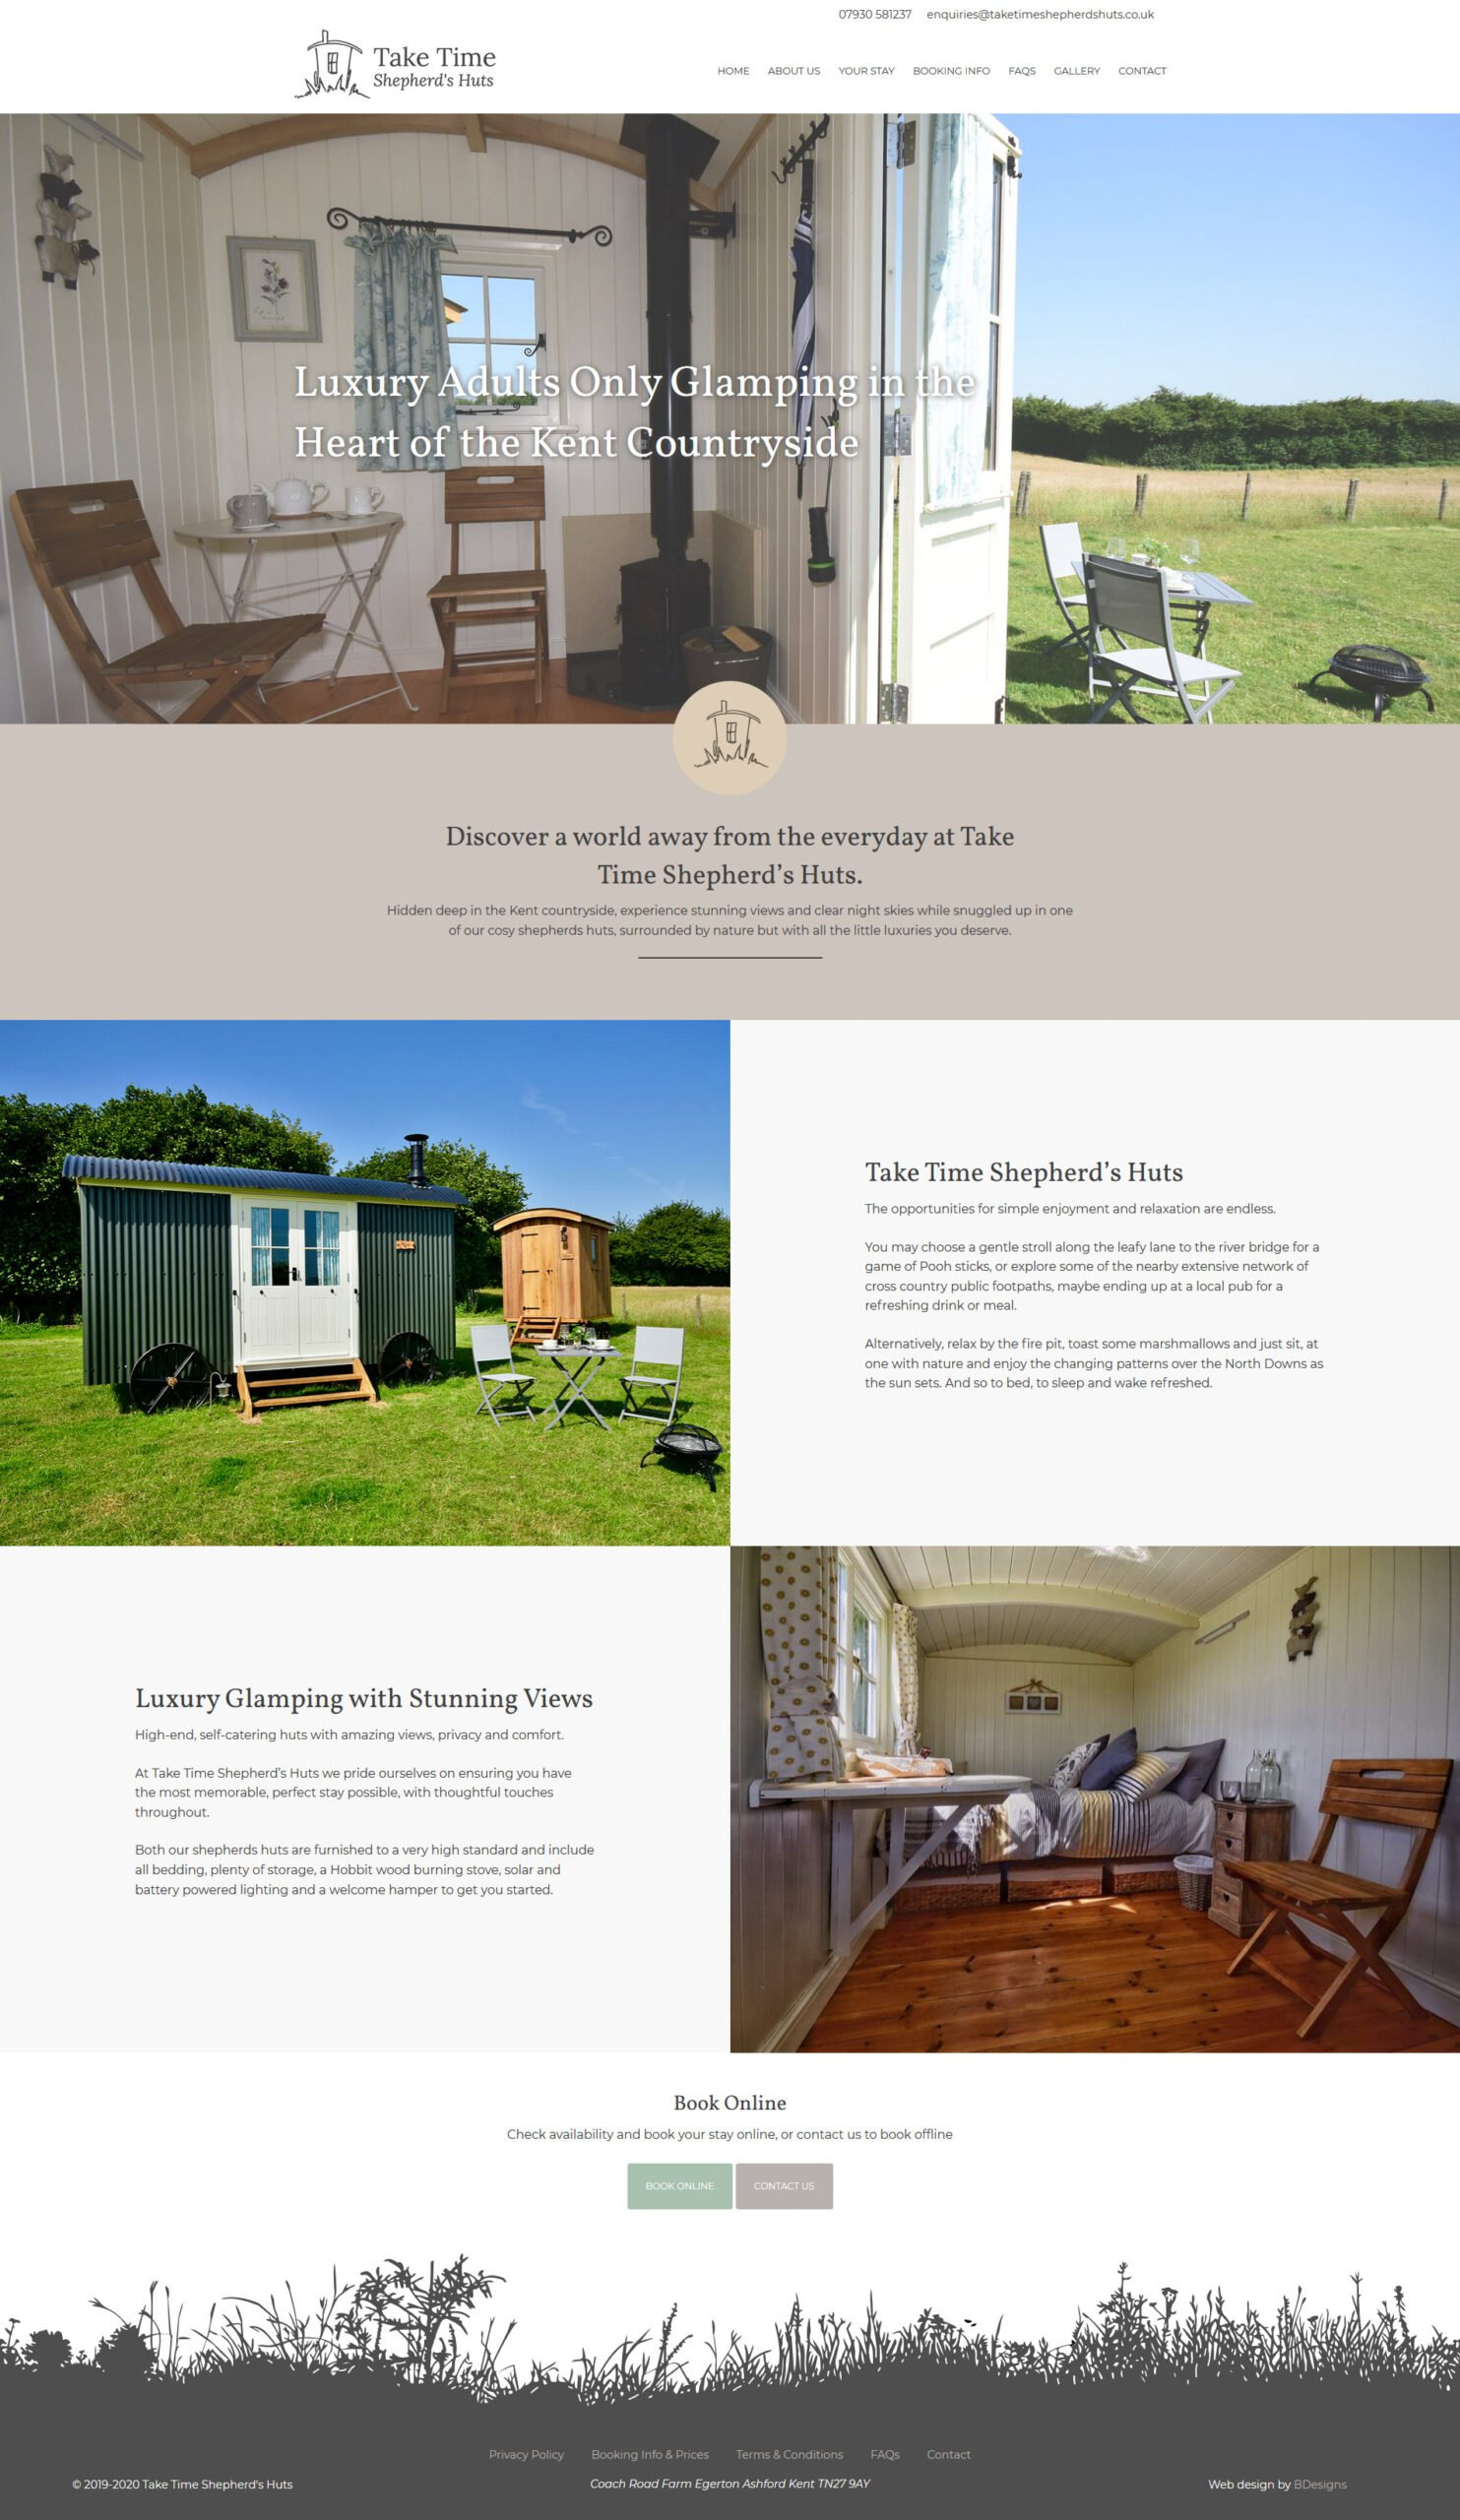 Luxury Adults Only Glamping in Kent Take Time Shepherd's Huts Webbsite